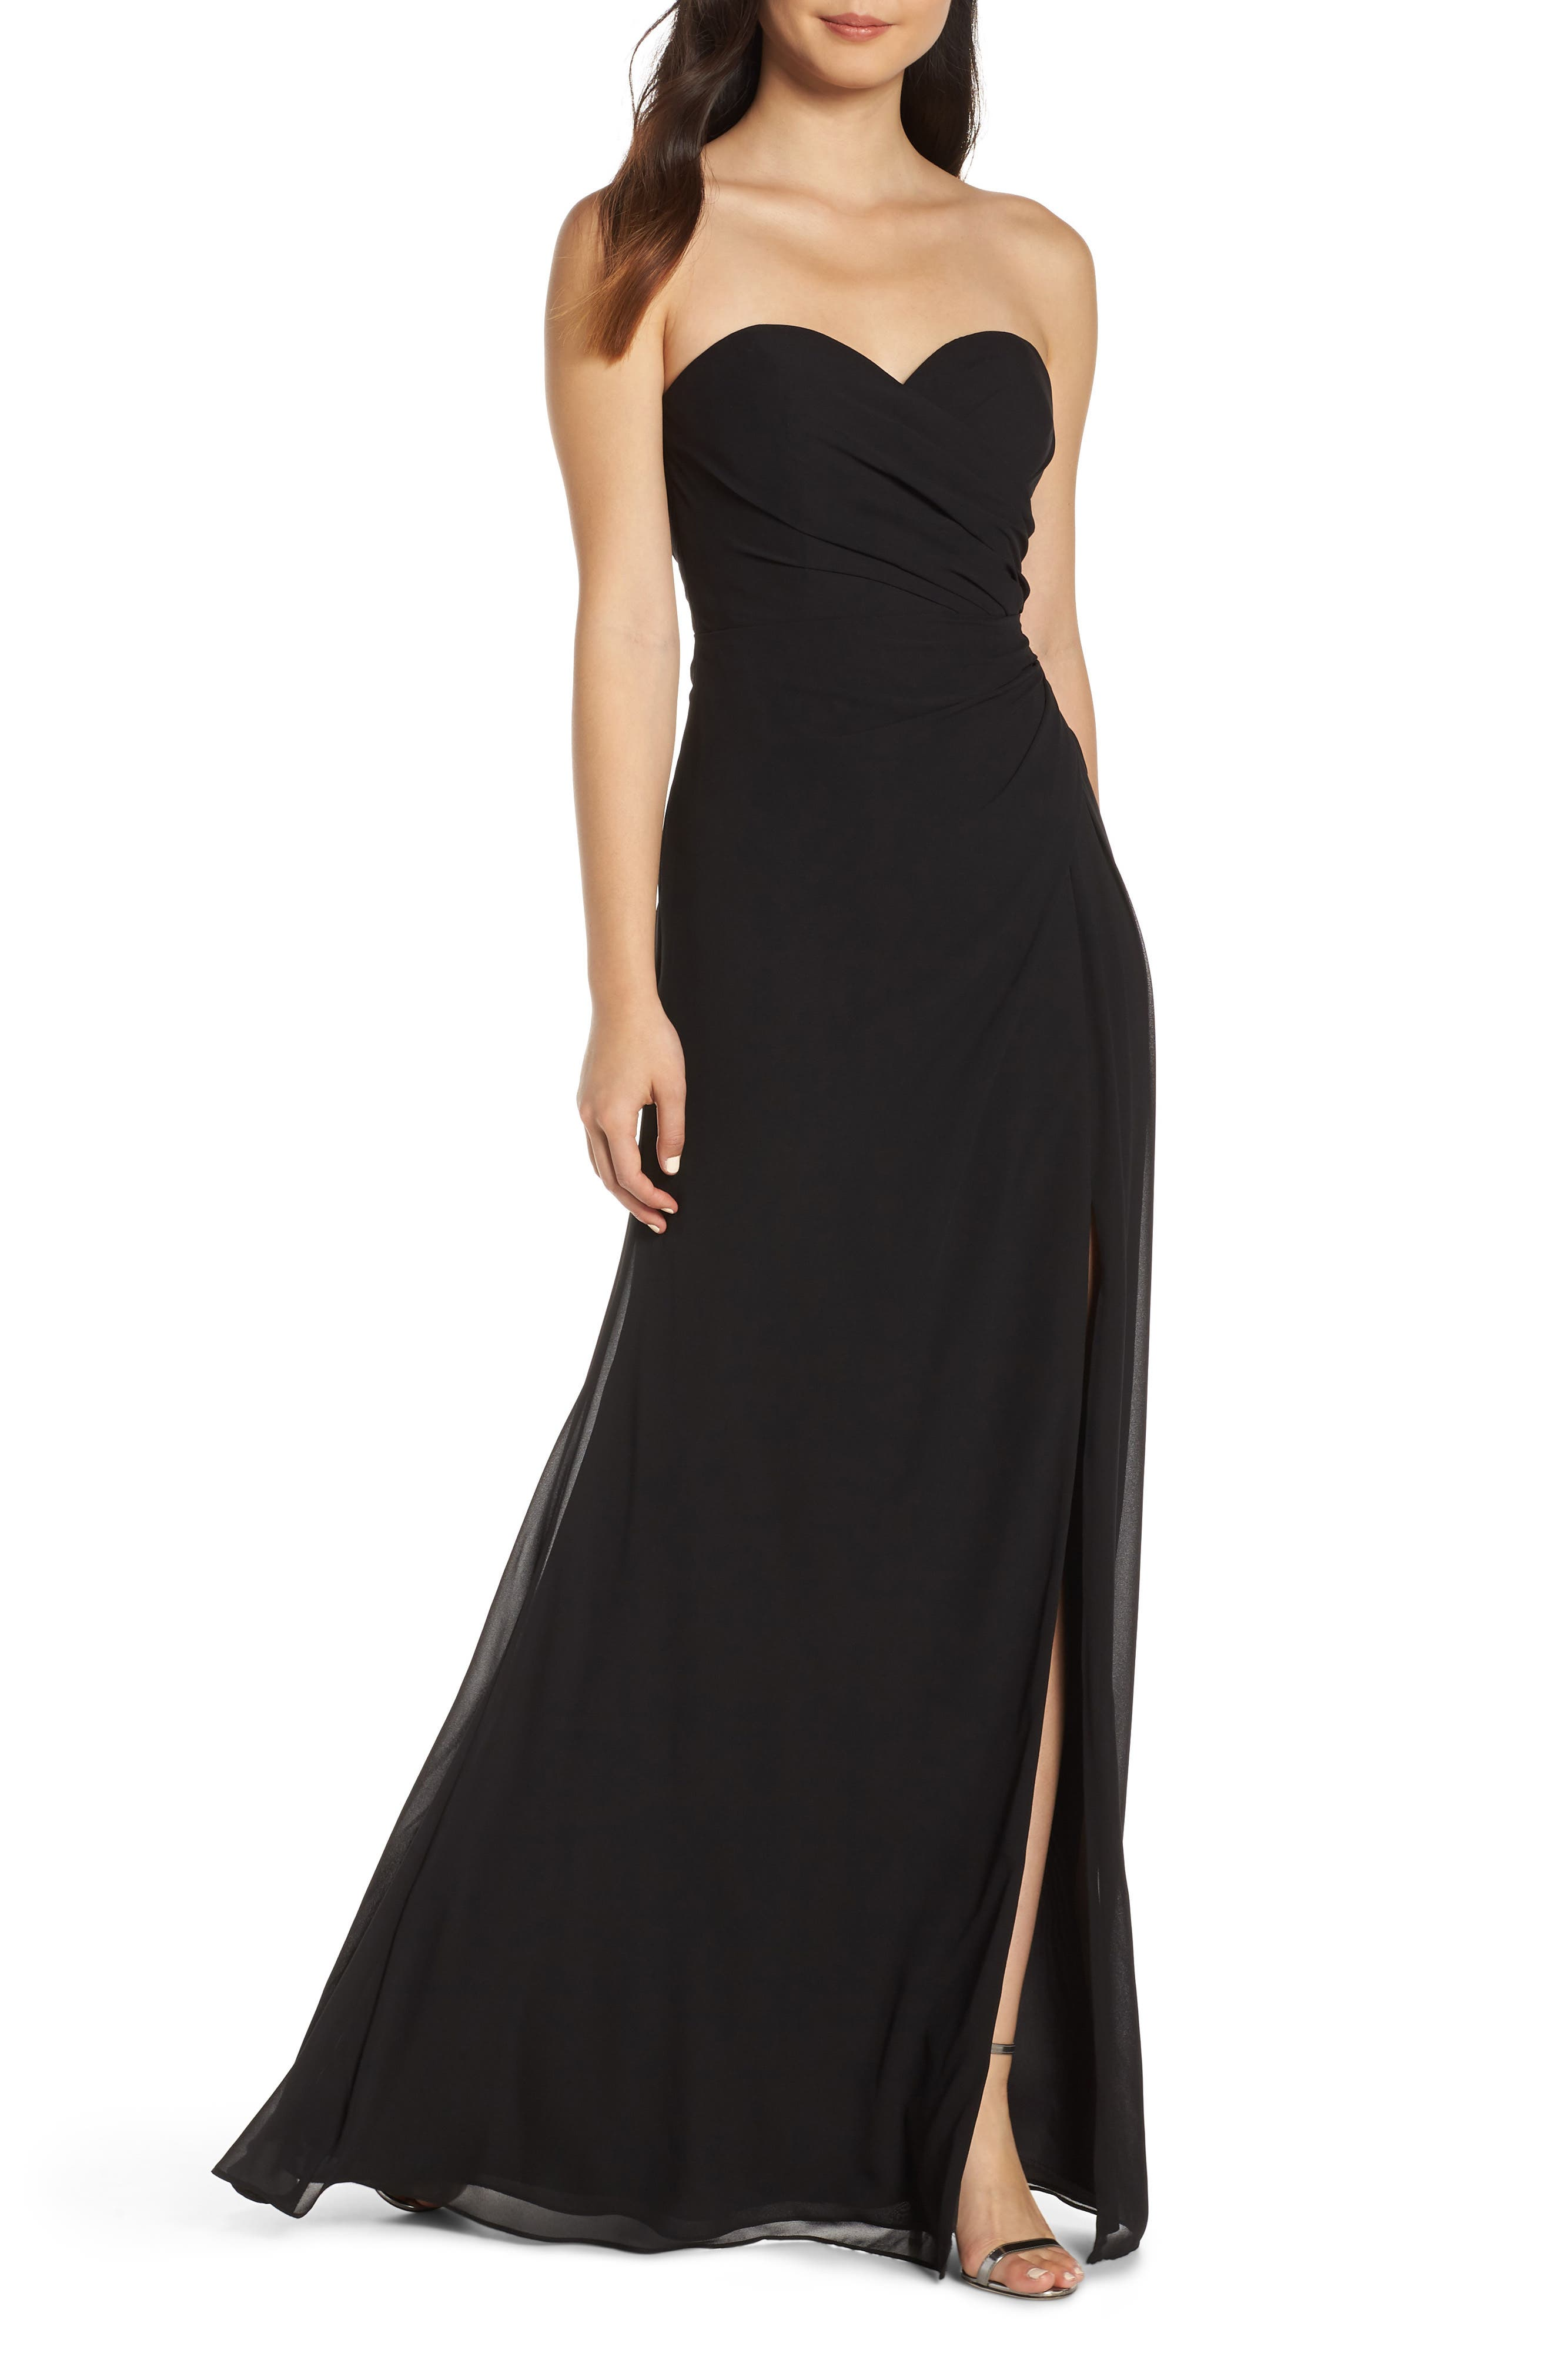 Hayley Paige Occasions Strapless Chiffon Evening Dress, Black